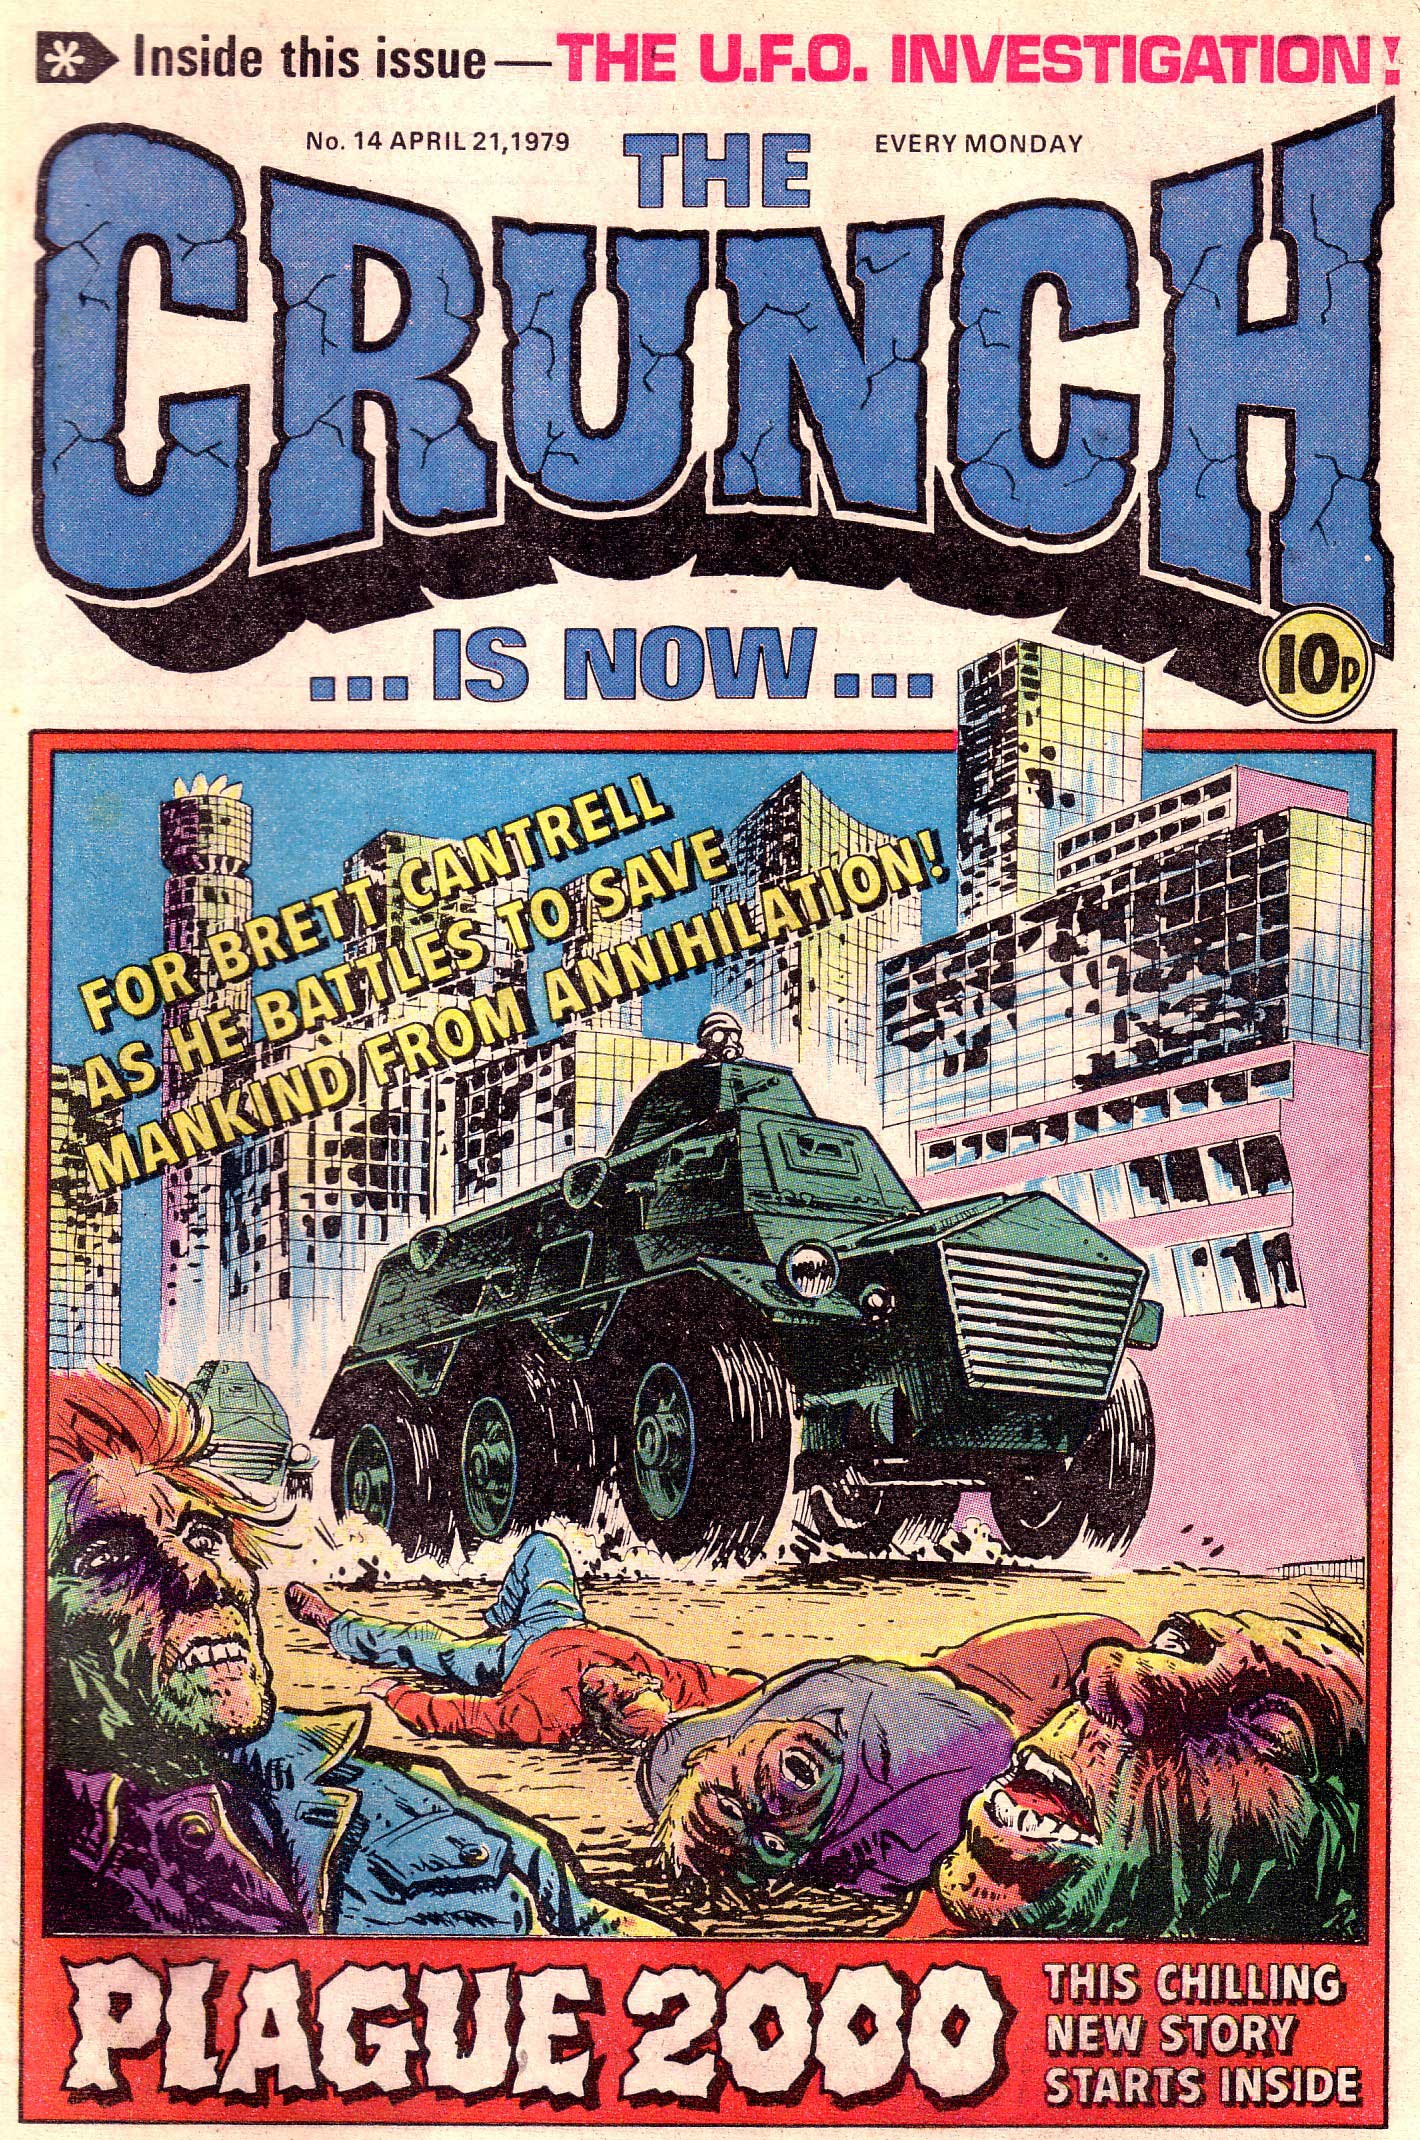 Issue 14 of DC Thomson's The Crunch - published in April 1979.